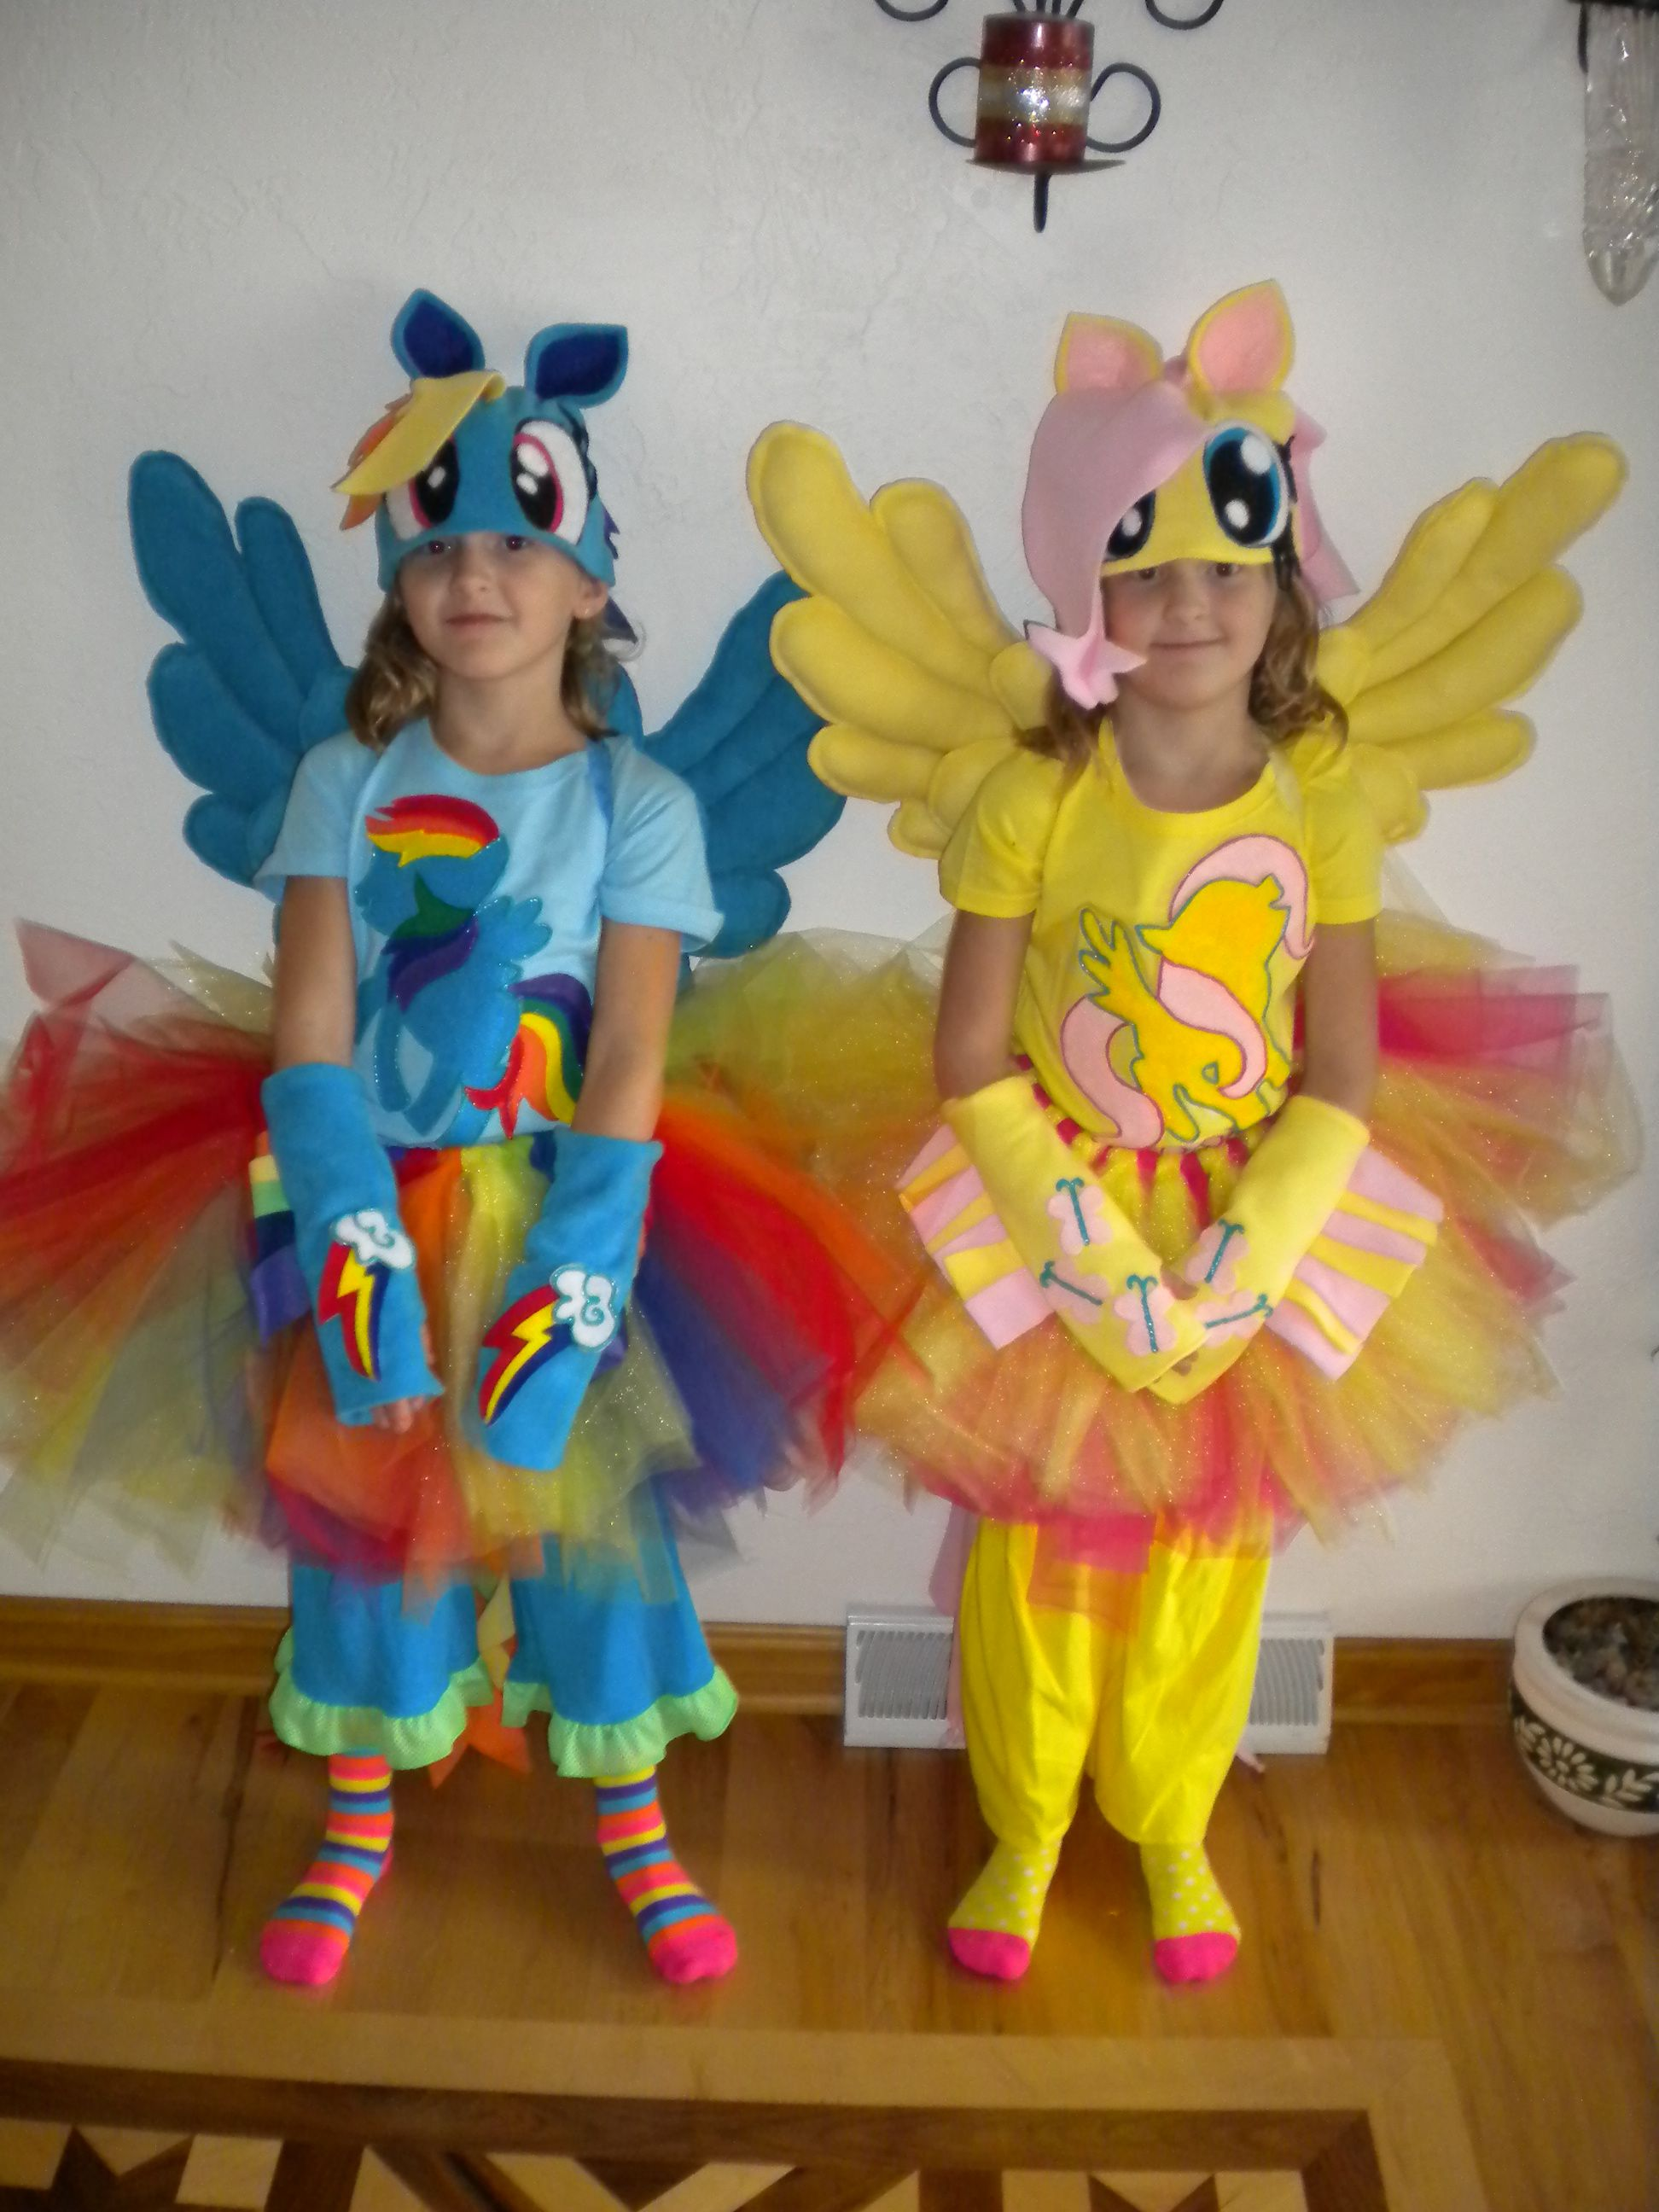 rainbow dash and fluttershy from y little pony. this years halloween